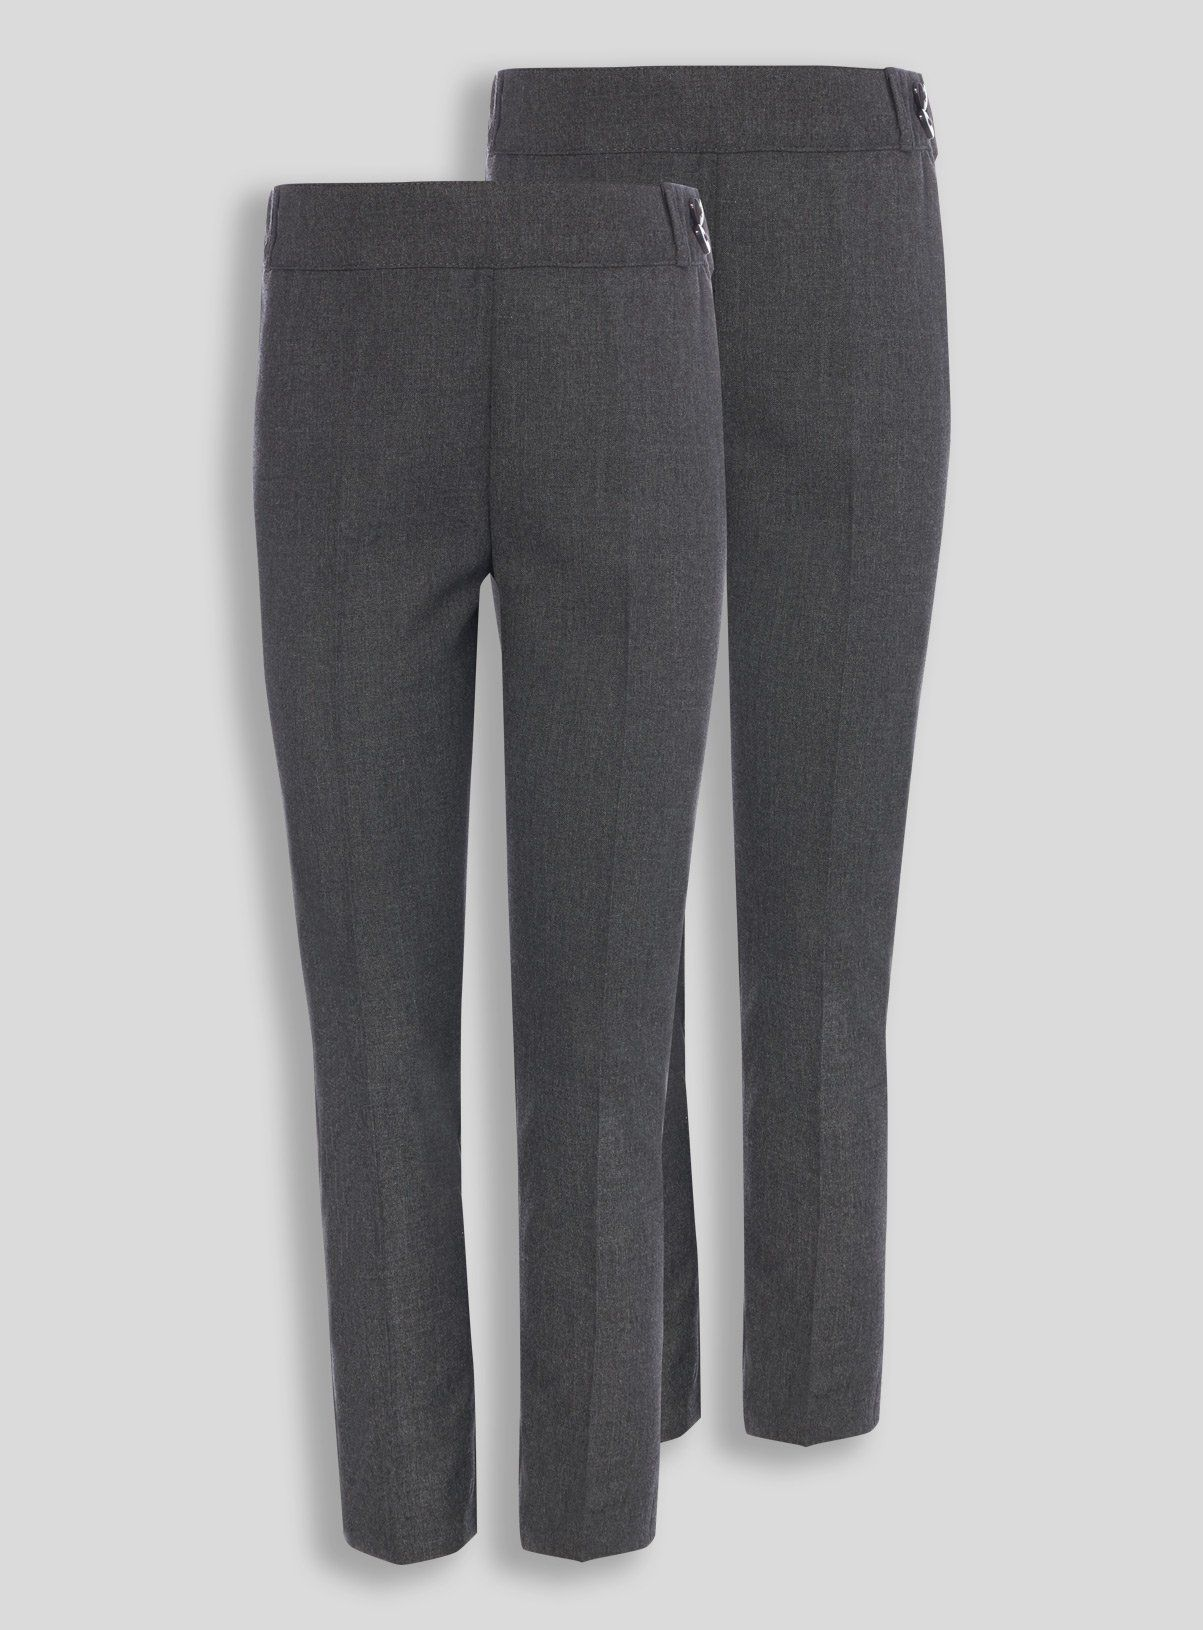 Designed in a plus fit with added crease resistance, these grey trousers are both smart and comfortable. Featuring stylish bow belt details, they are sure to make a welcome addition to their schoolwear range.Online exclusiveGrey plus fit trousers2 PackBow belt loopsTapered legUnder 5 years- Pull on trousers, Over 5 years- zip and clasp fasteningsCrease resistantKeep away from fire